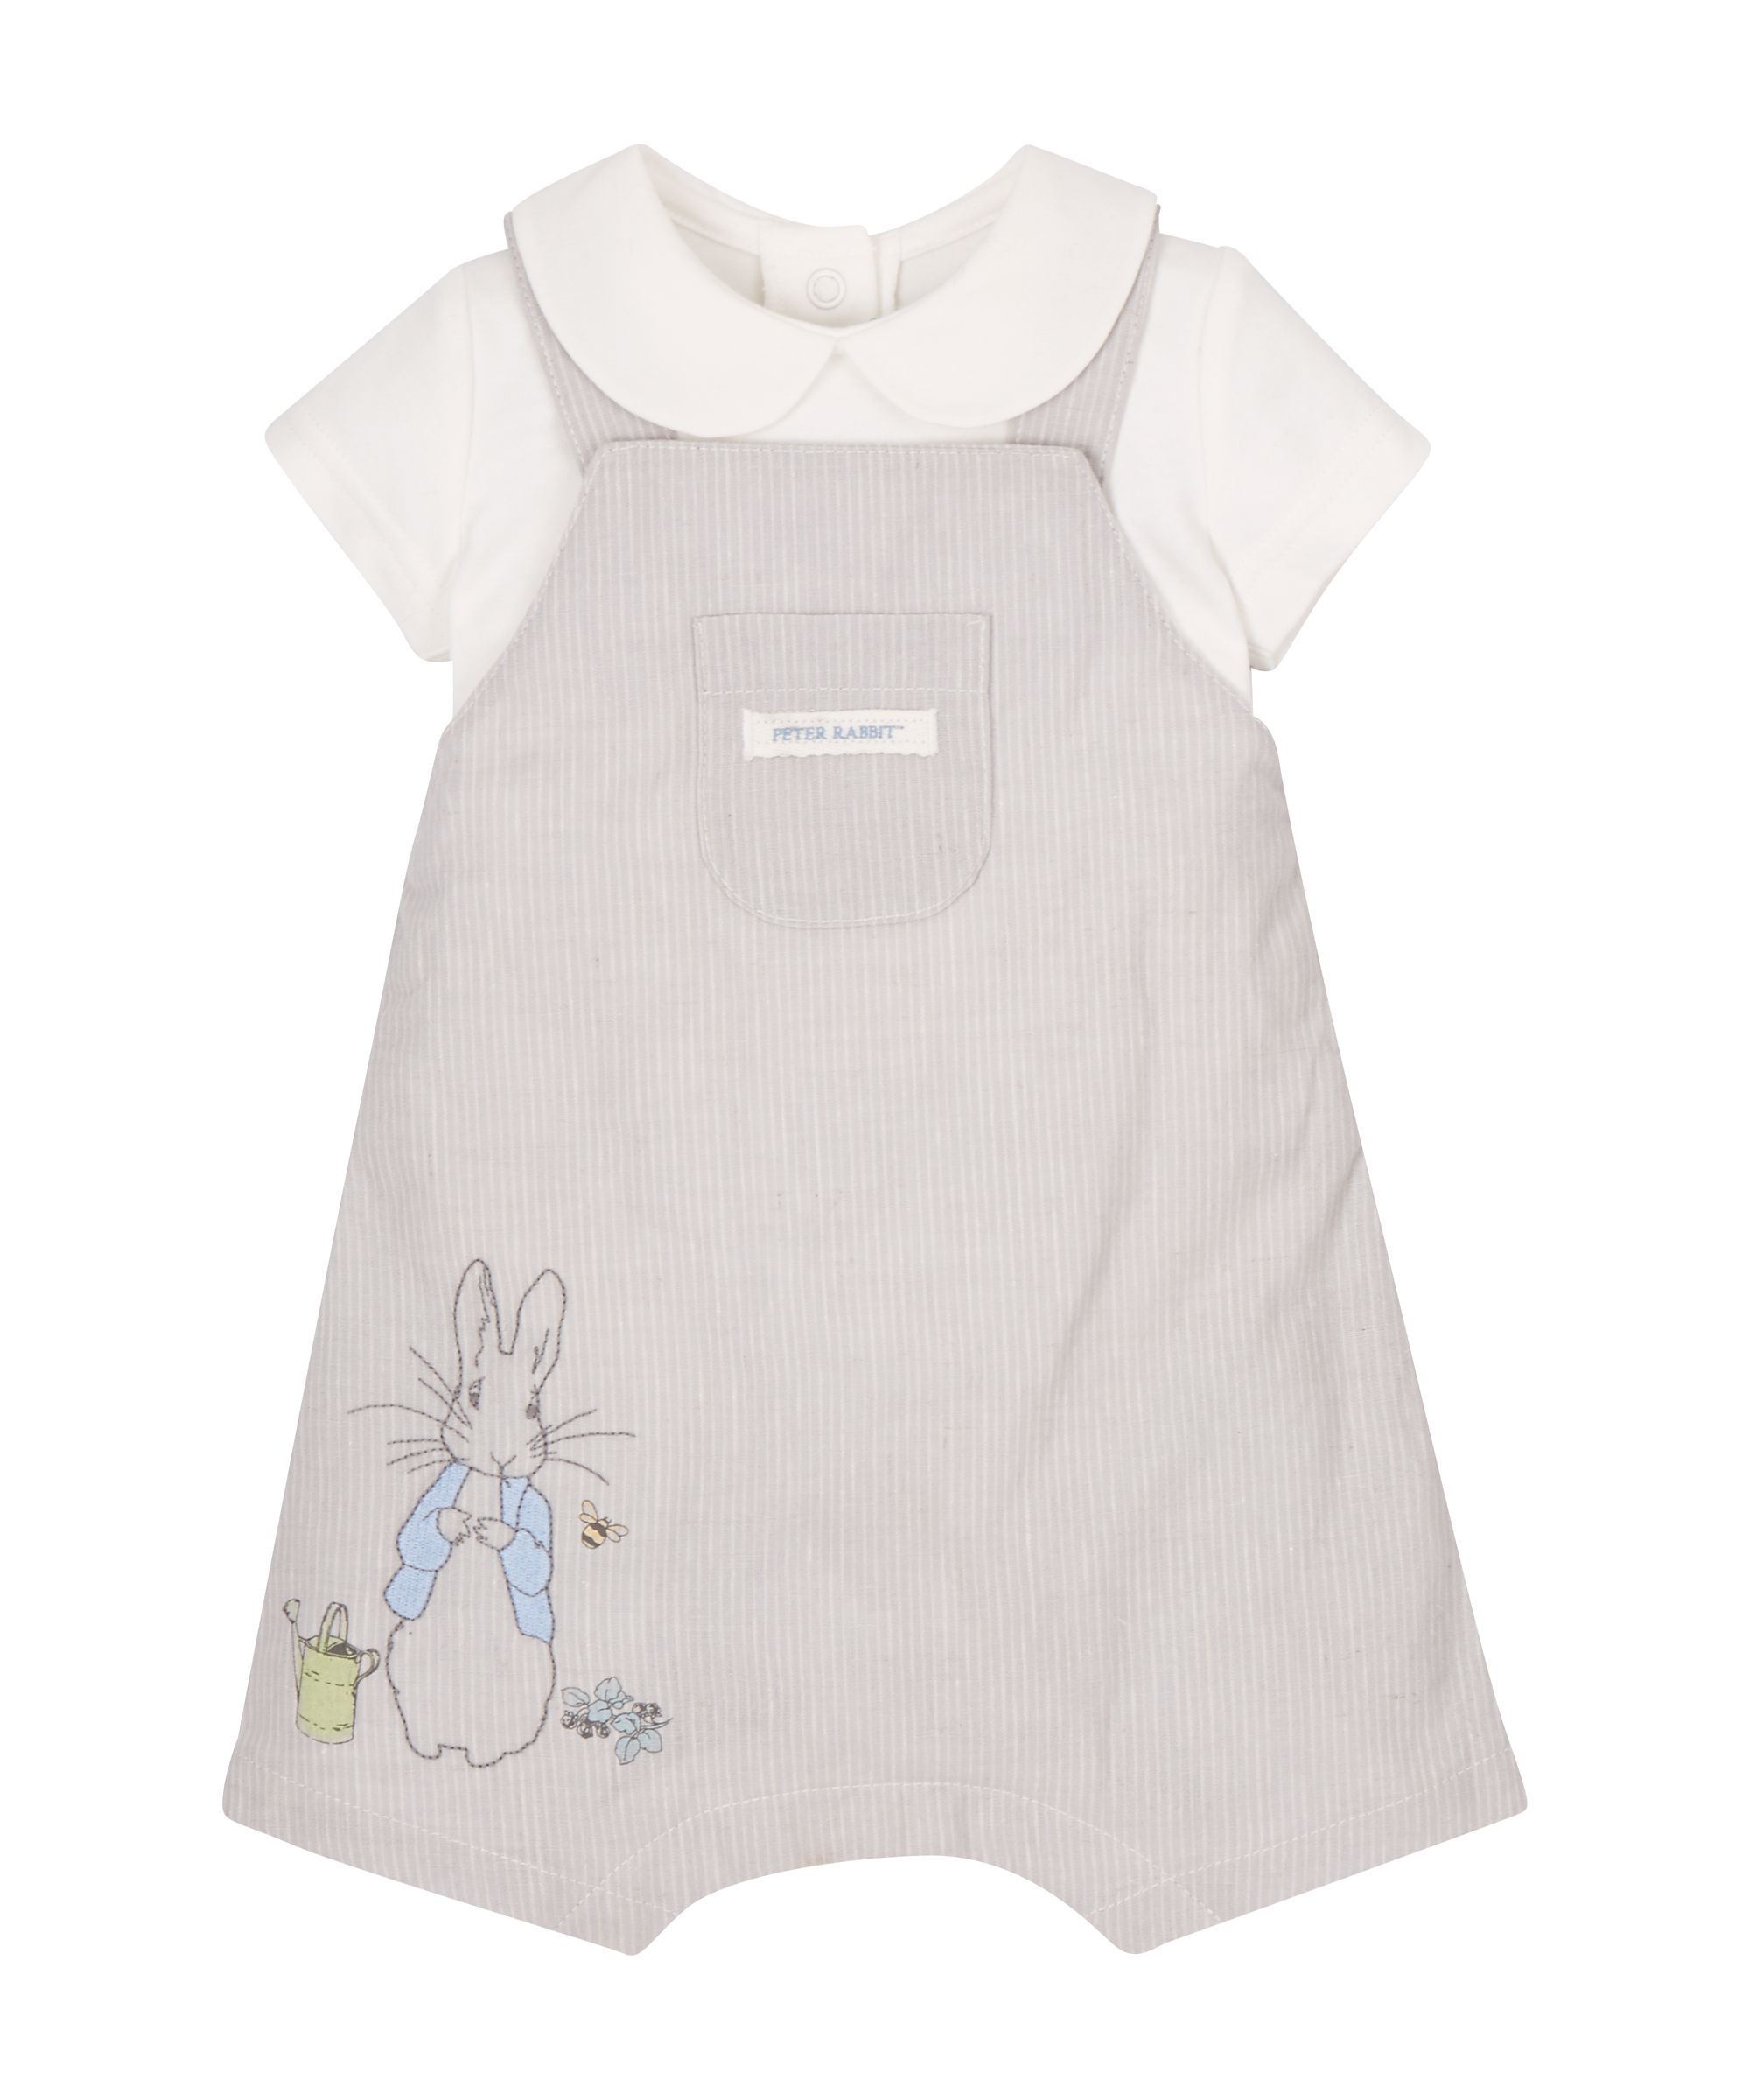 af118afce Peter Rabbit Dungarees and Bodysuit - Mothercare 16£